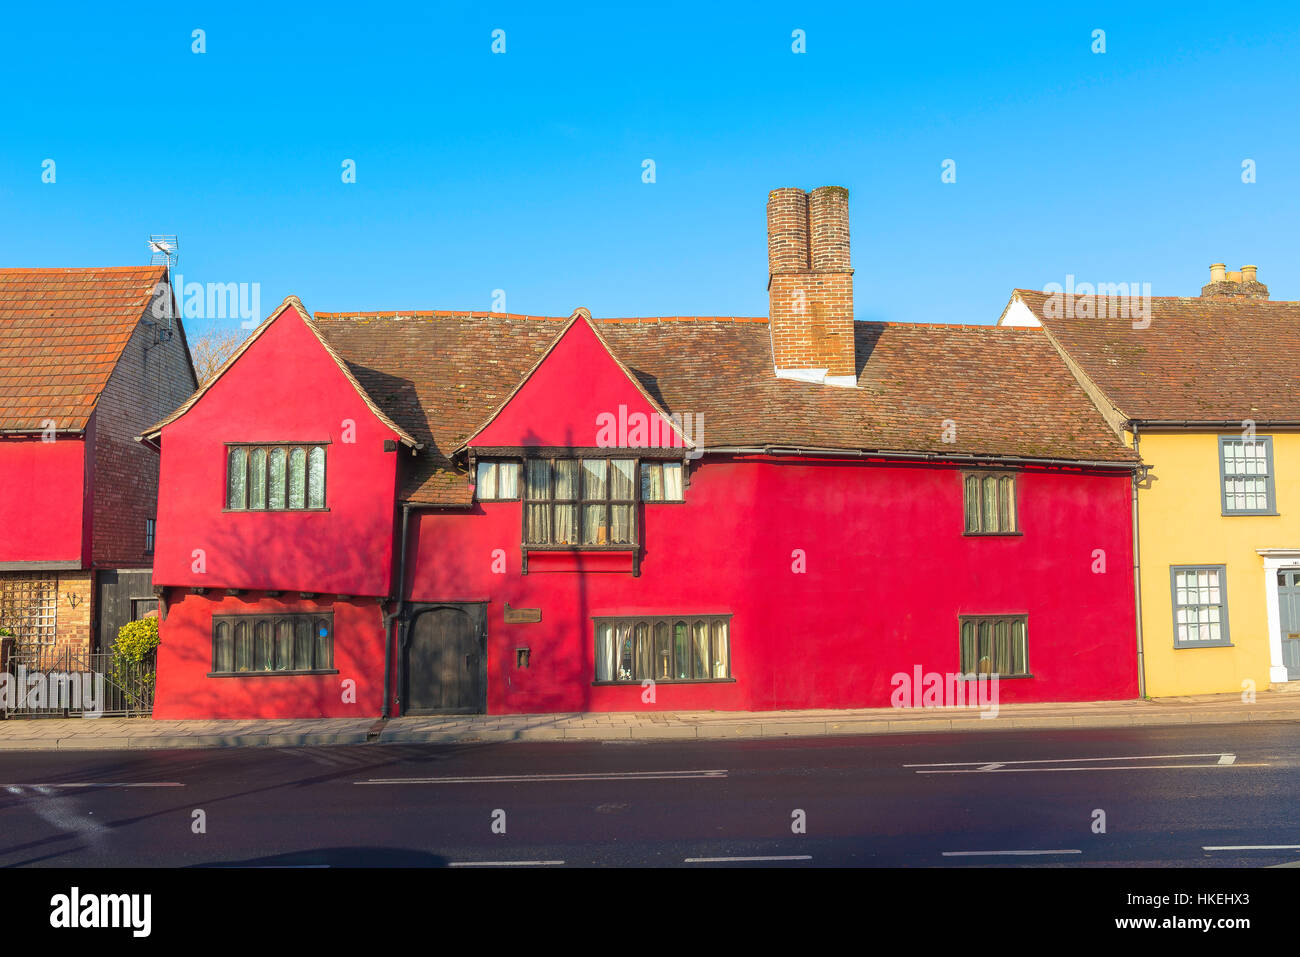 Red house Sudbury, a colourful medieval town house in Cross Street, Sudbury, Suffolk, UK - Stock Image